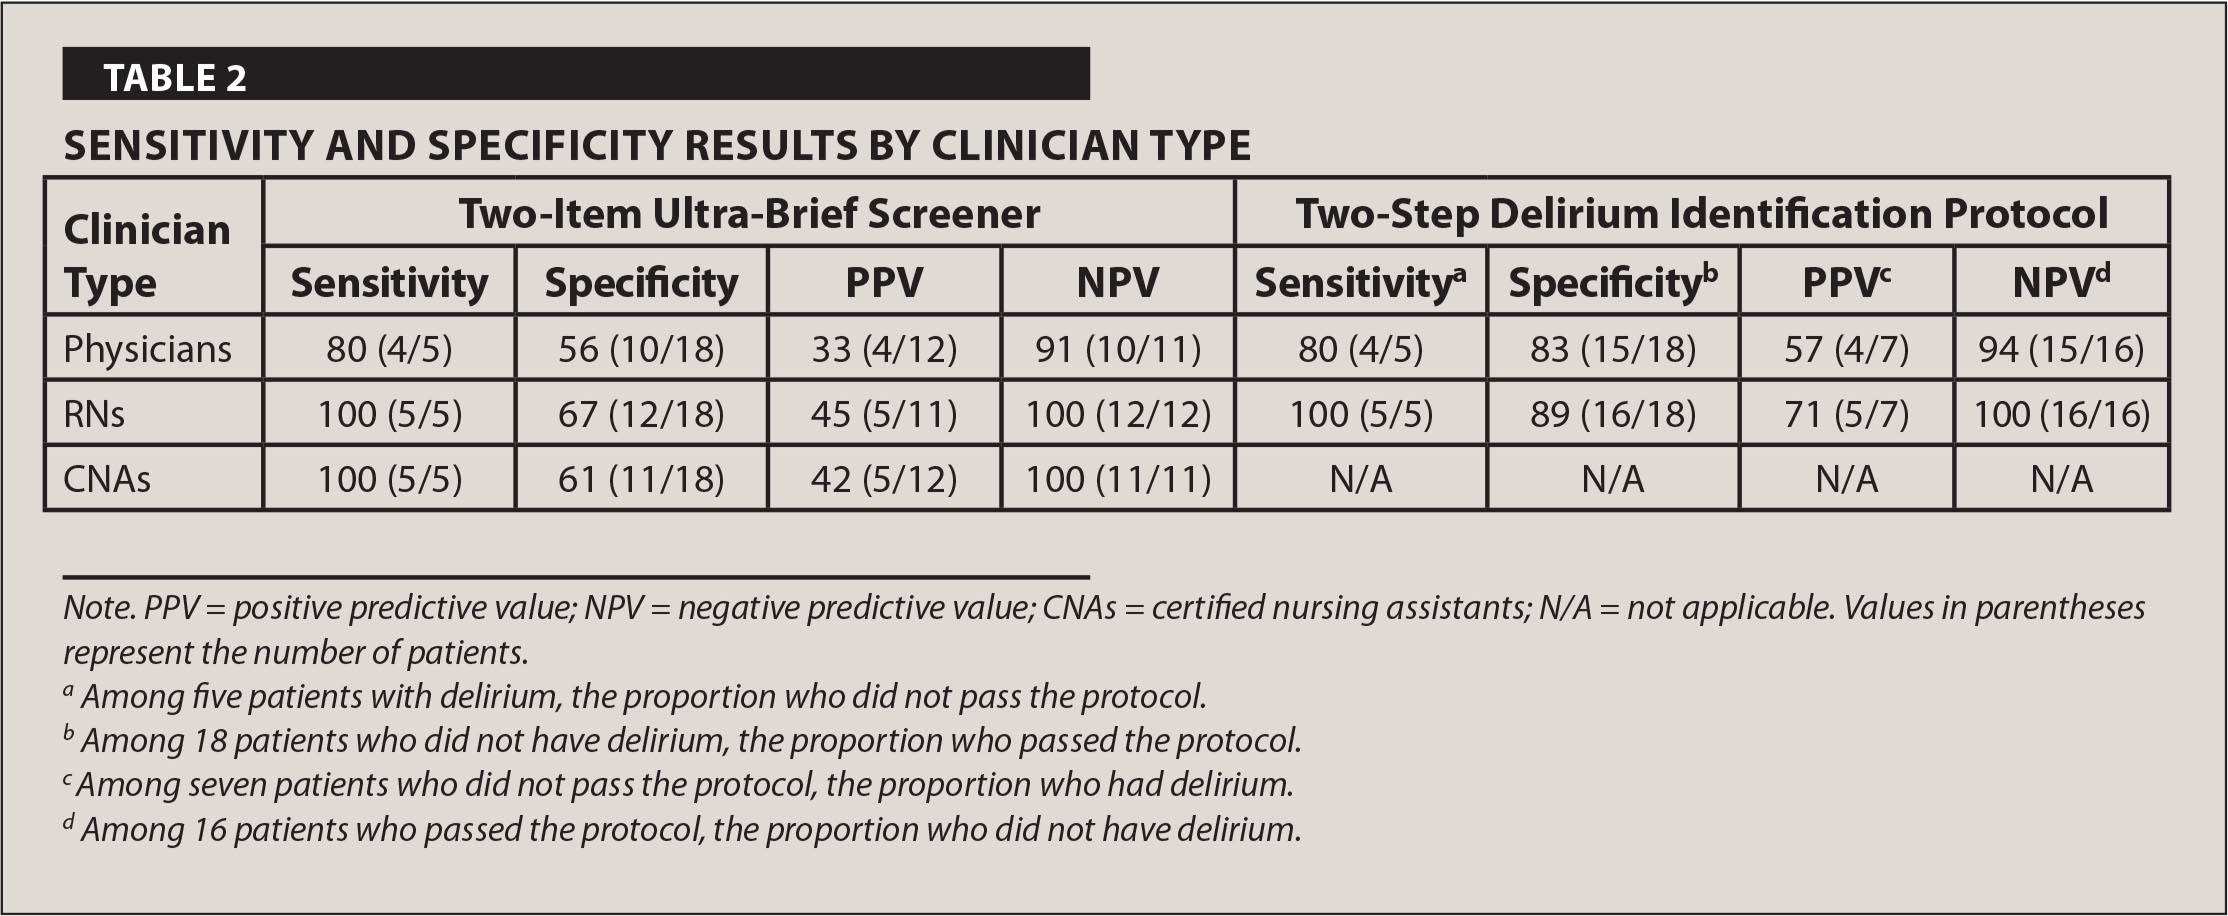 Sensitivity and Specificity Results by Clinician Type